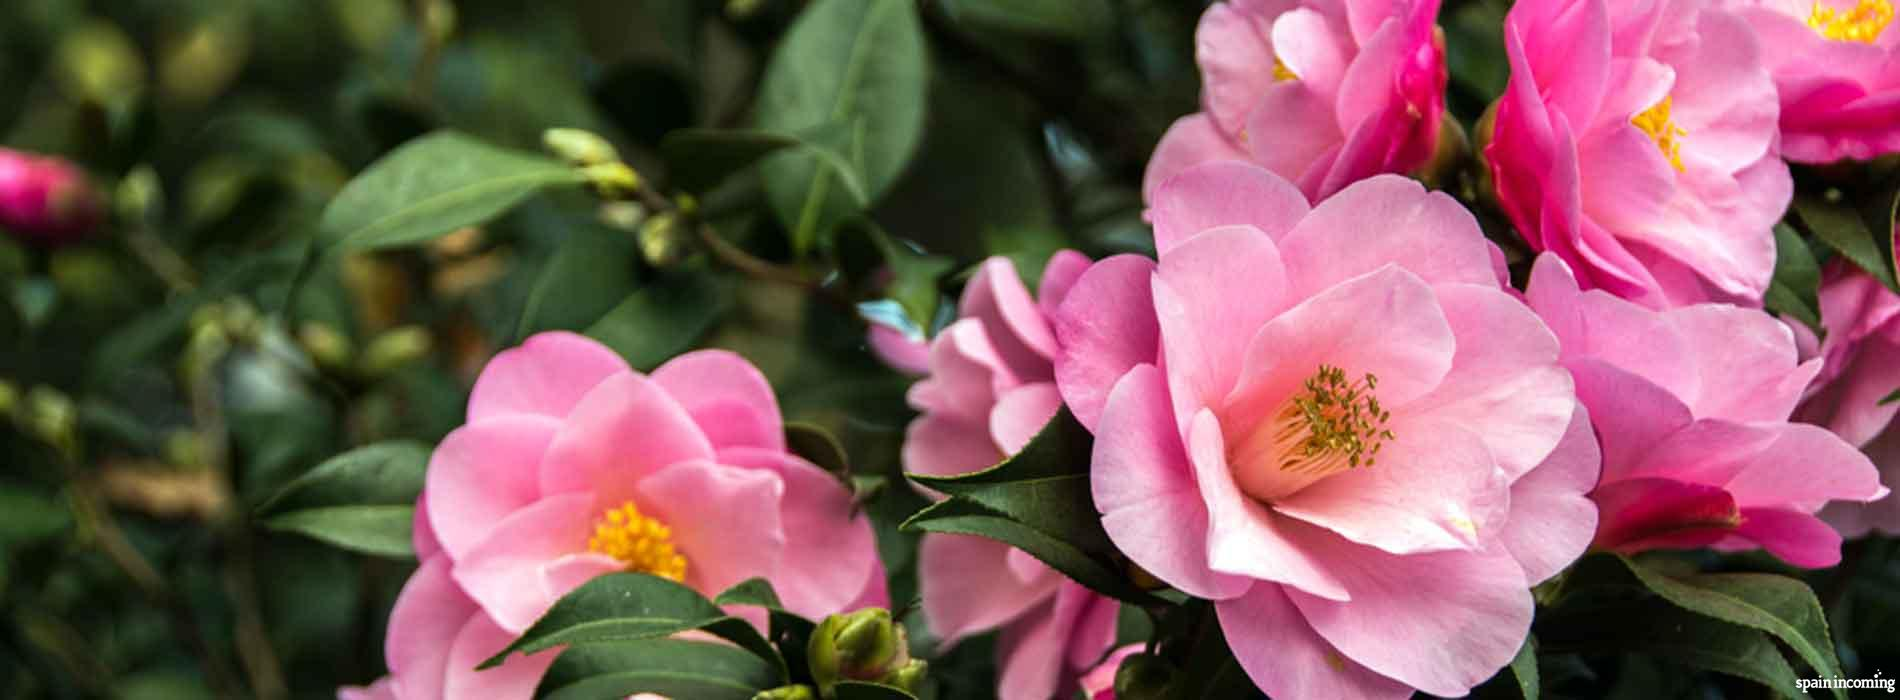 The Camellia route in Galicia - Camellias